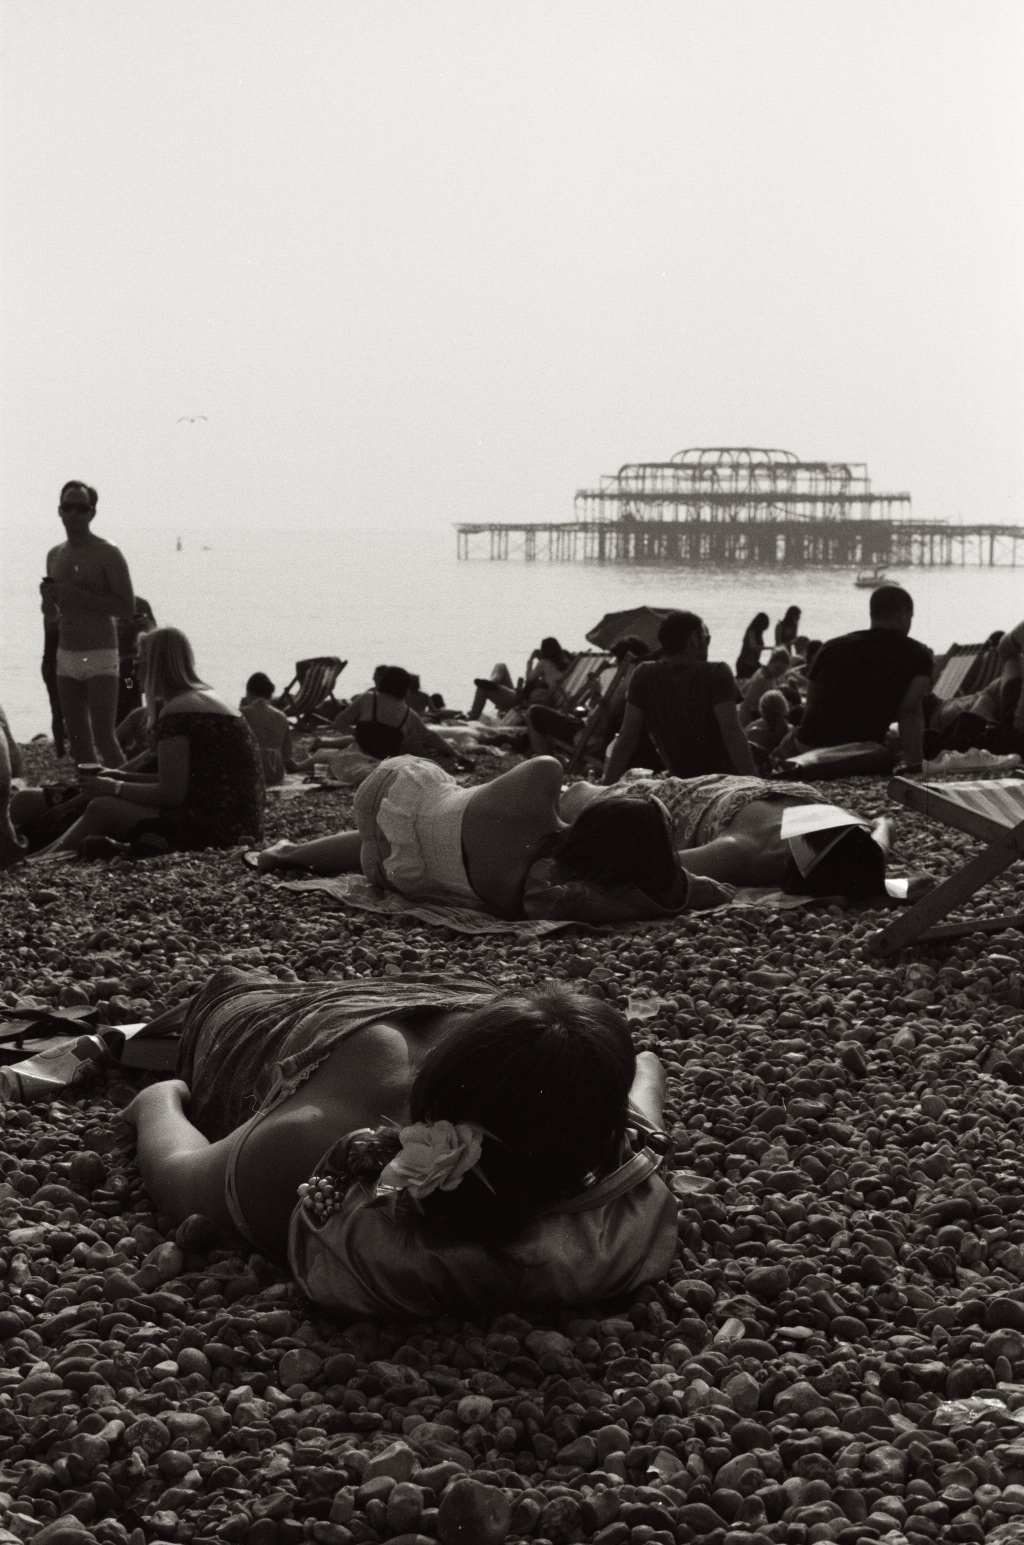 076_BrightonBeach.jpg